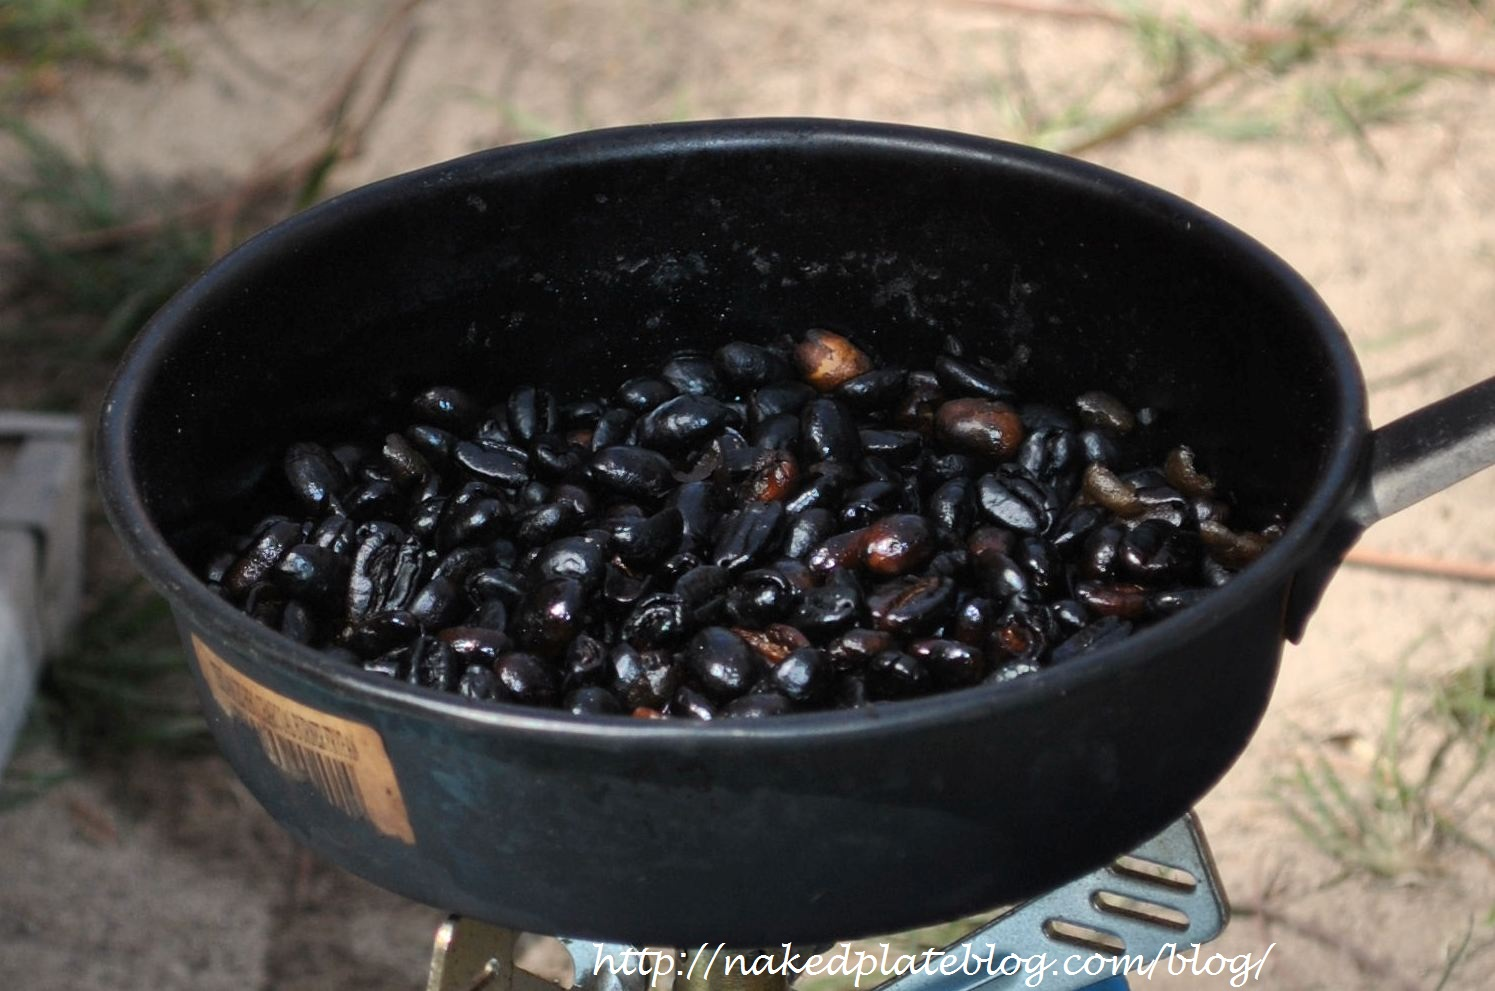 Roasted Ethiopan Coffee_